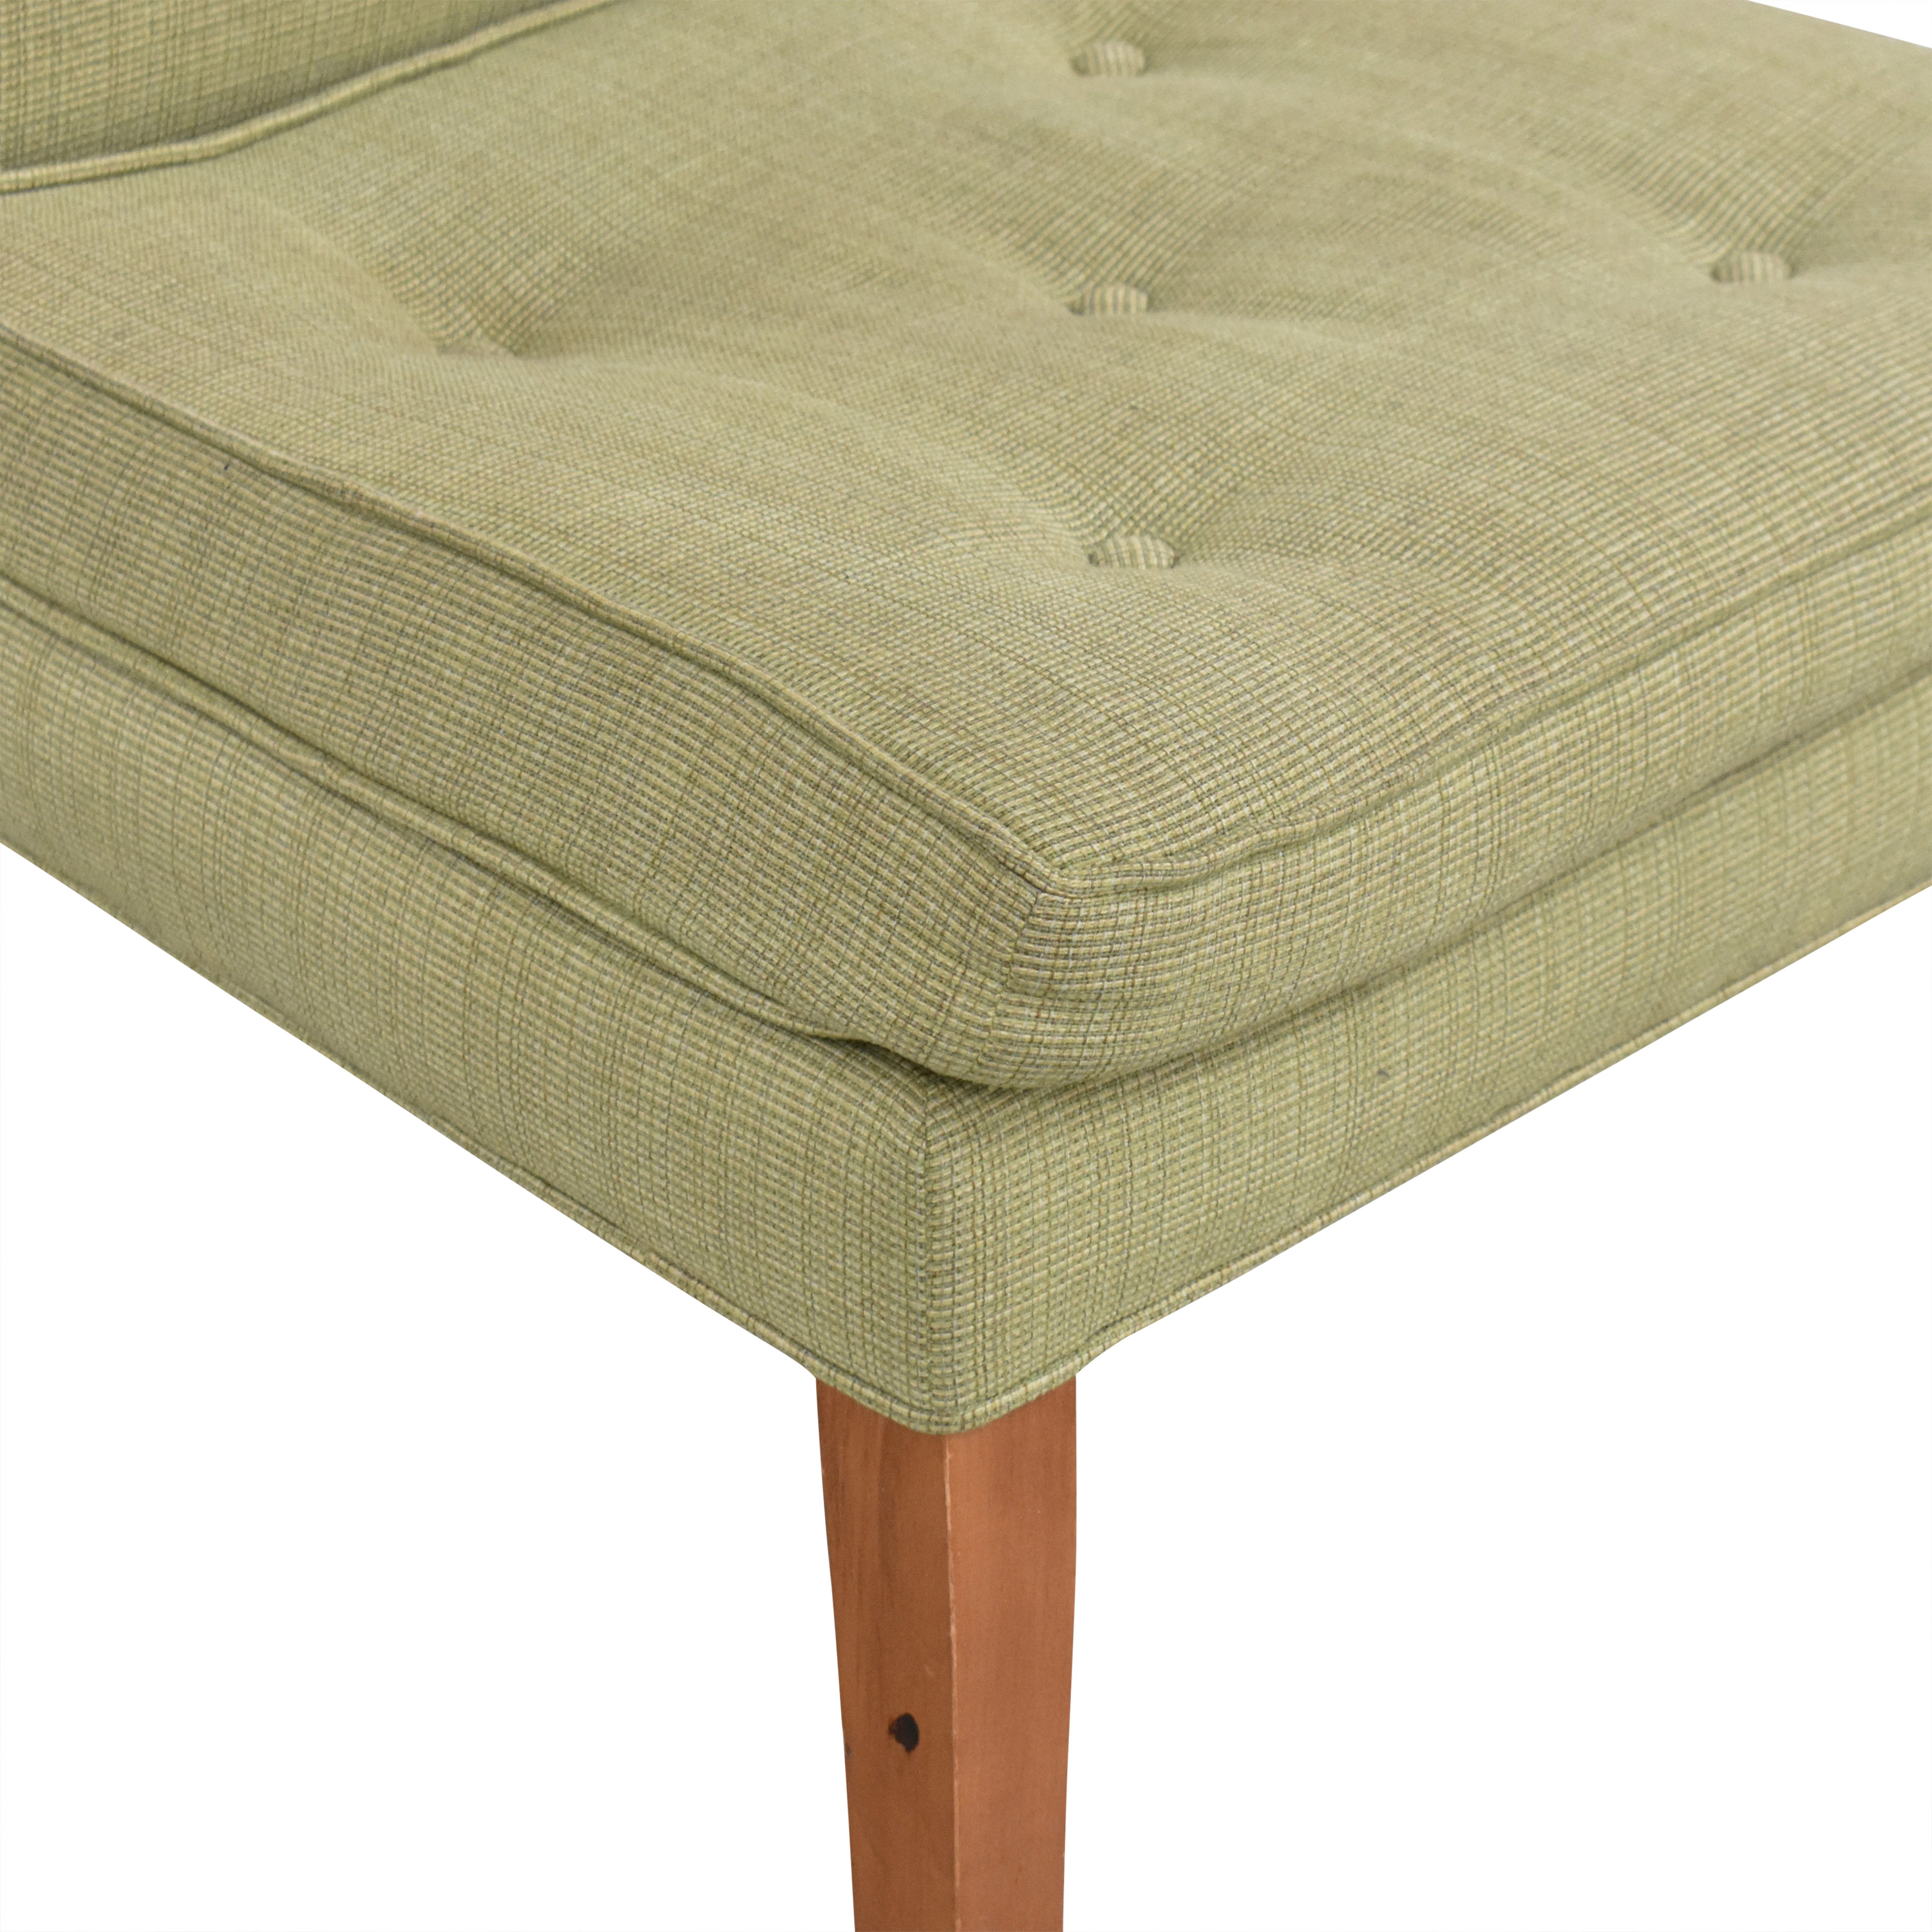 Custom Upholstered High Back Chair  dimensions